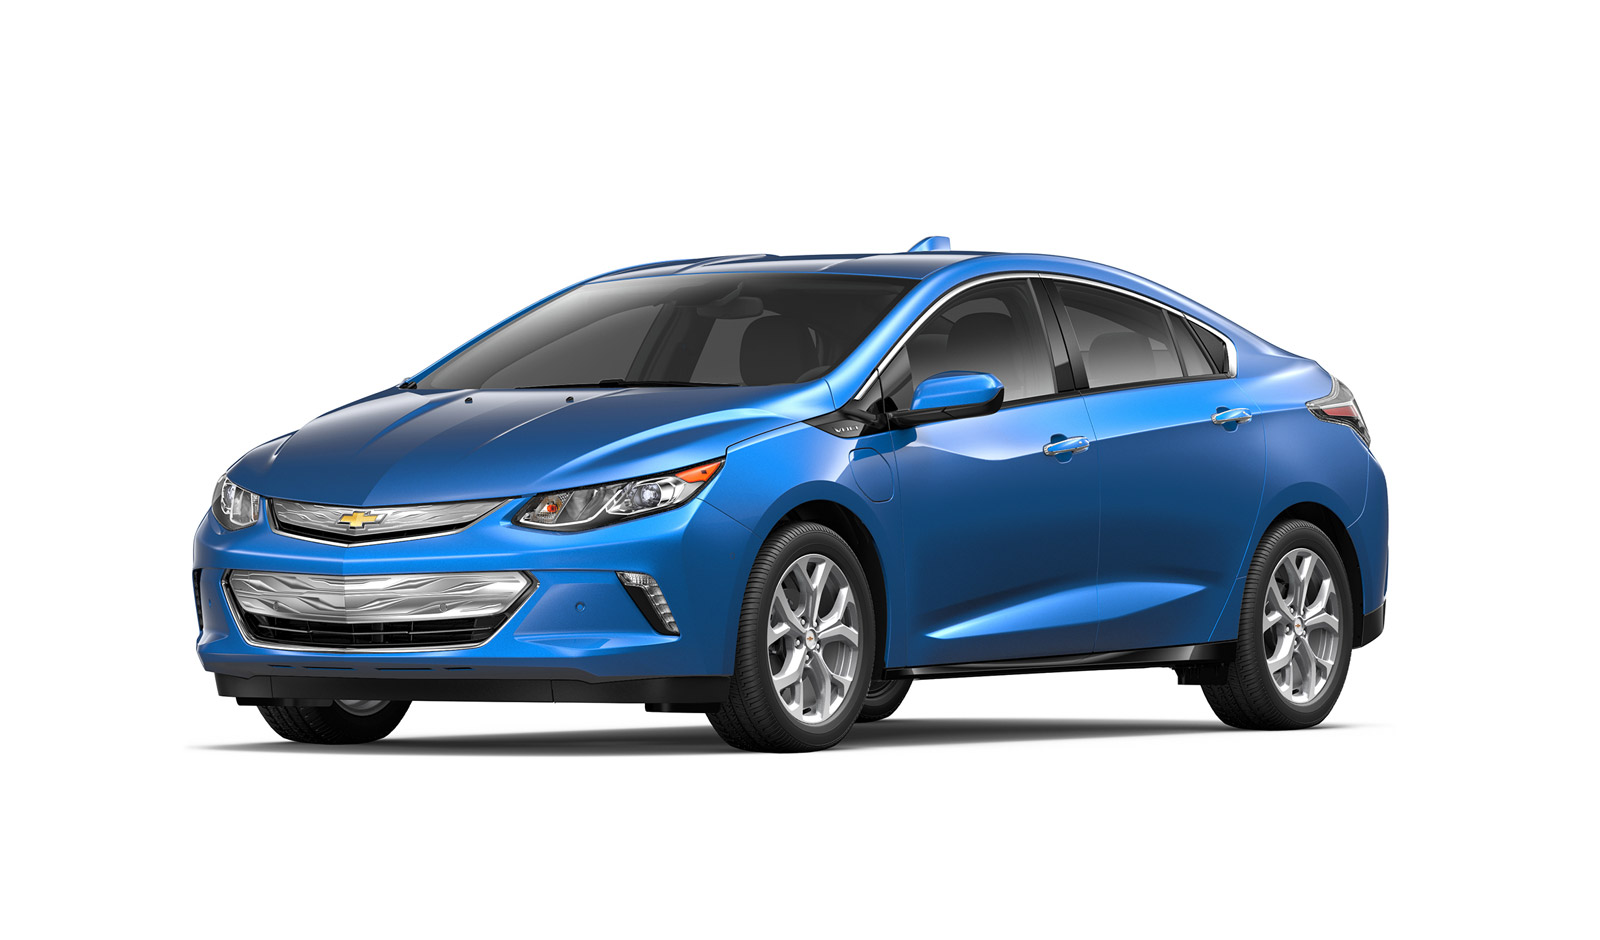 2016 Chevrolet Volt Ads Attacking Prius Leaf And Bolt Ev